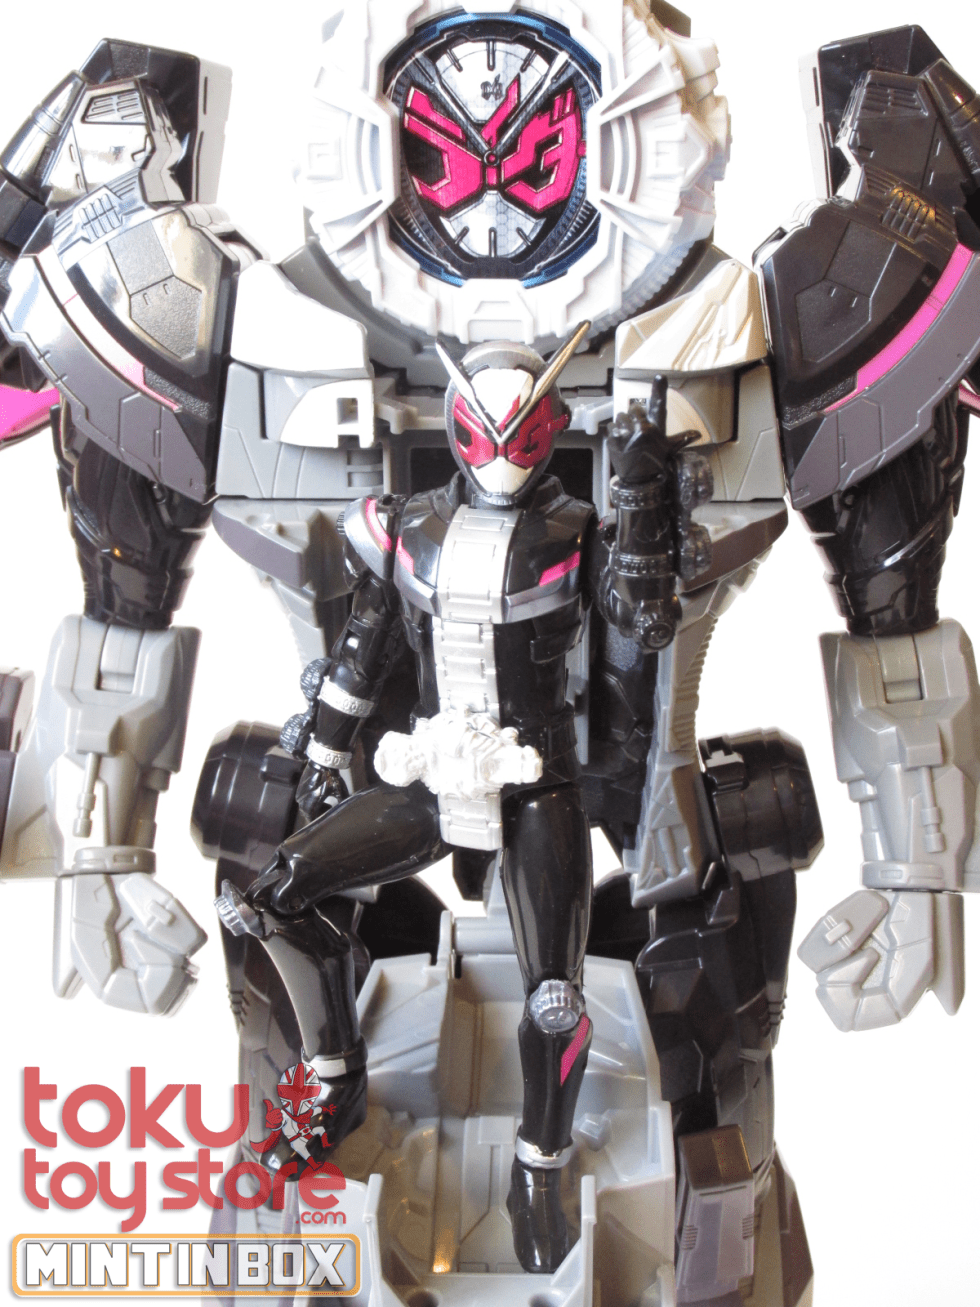 RKF_DX Time Mazine_Toku Toy Store (3)